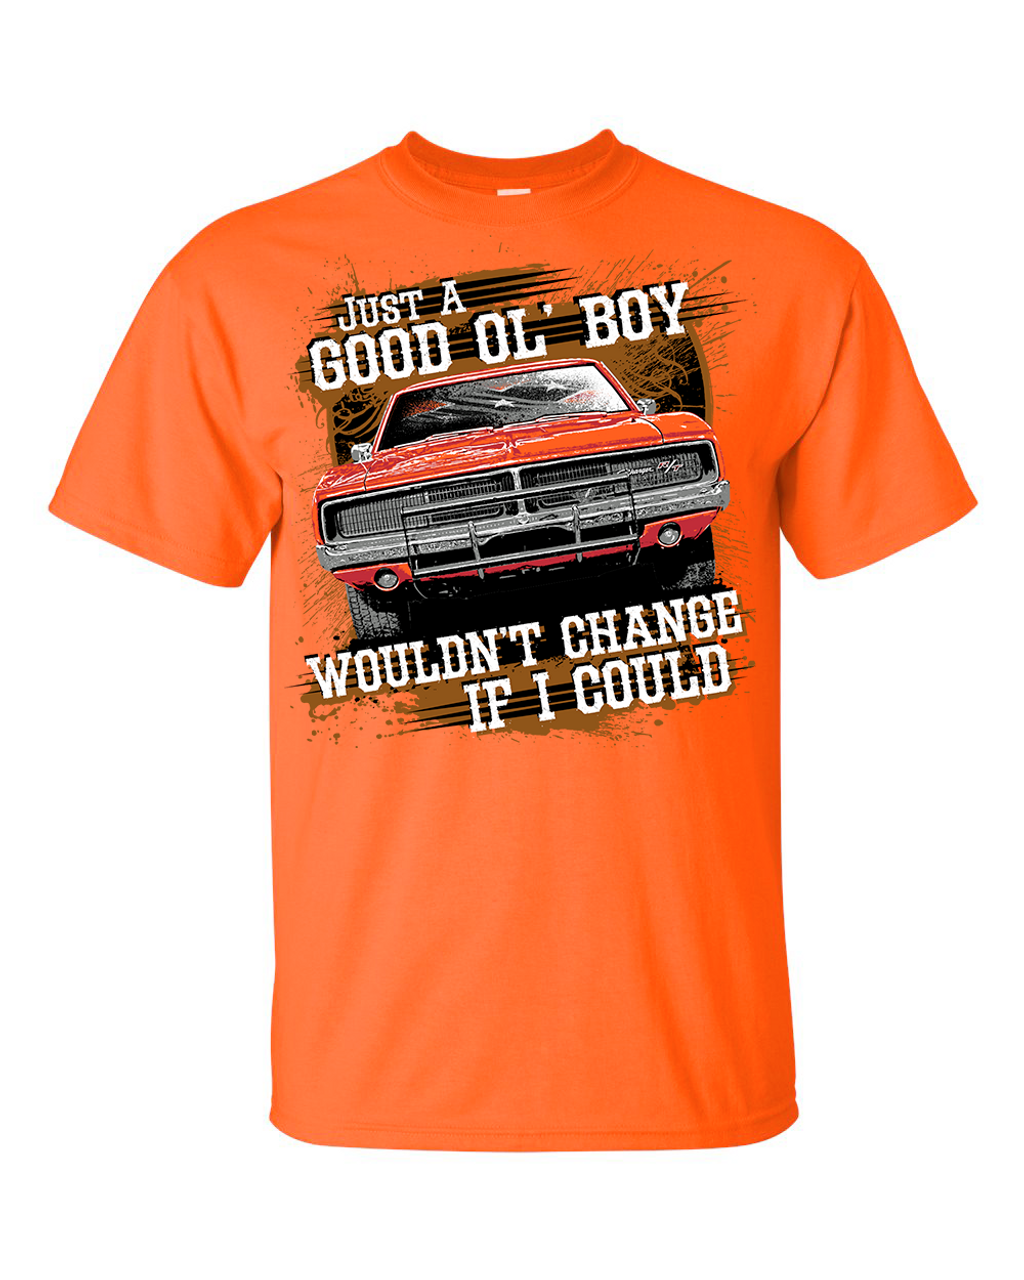 Wouldn't Change If I Could T-Shirt